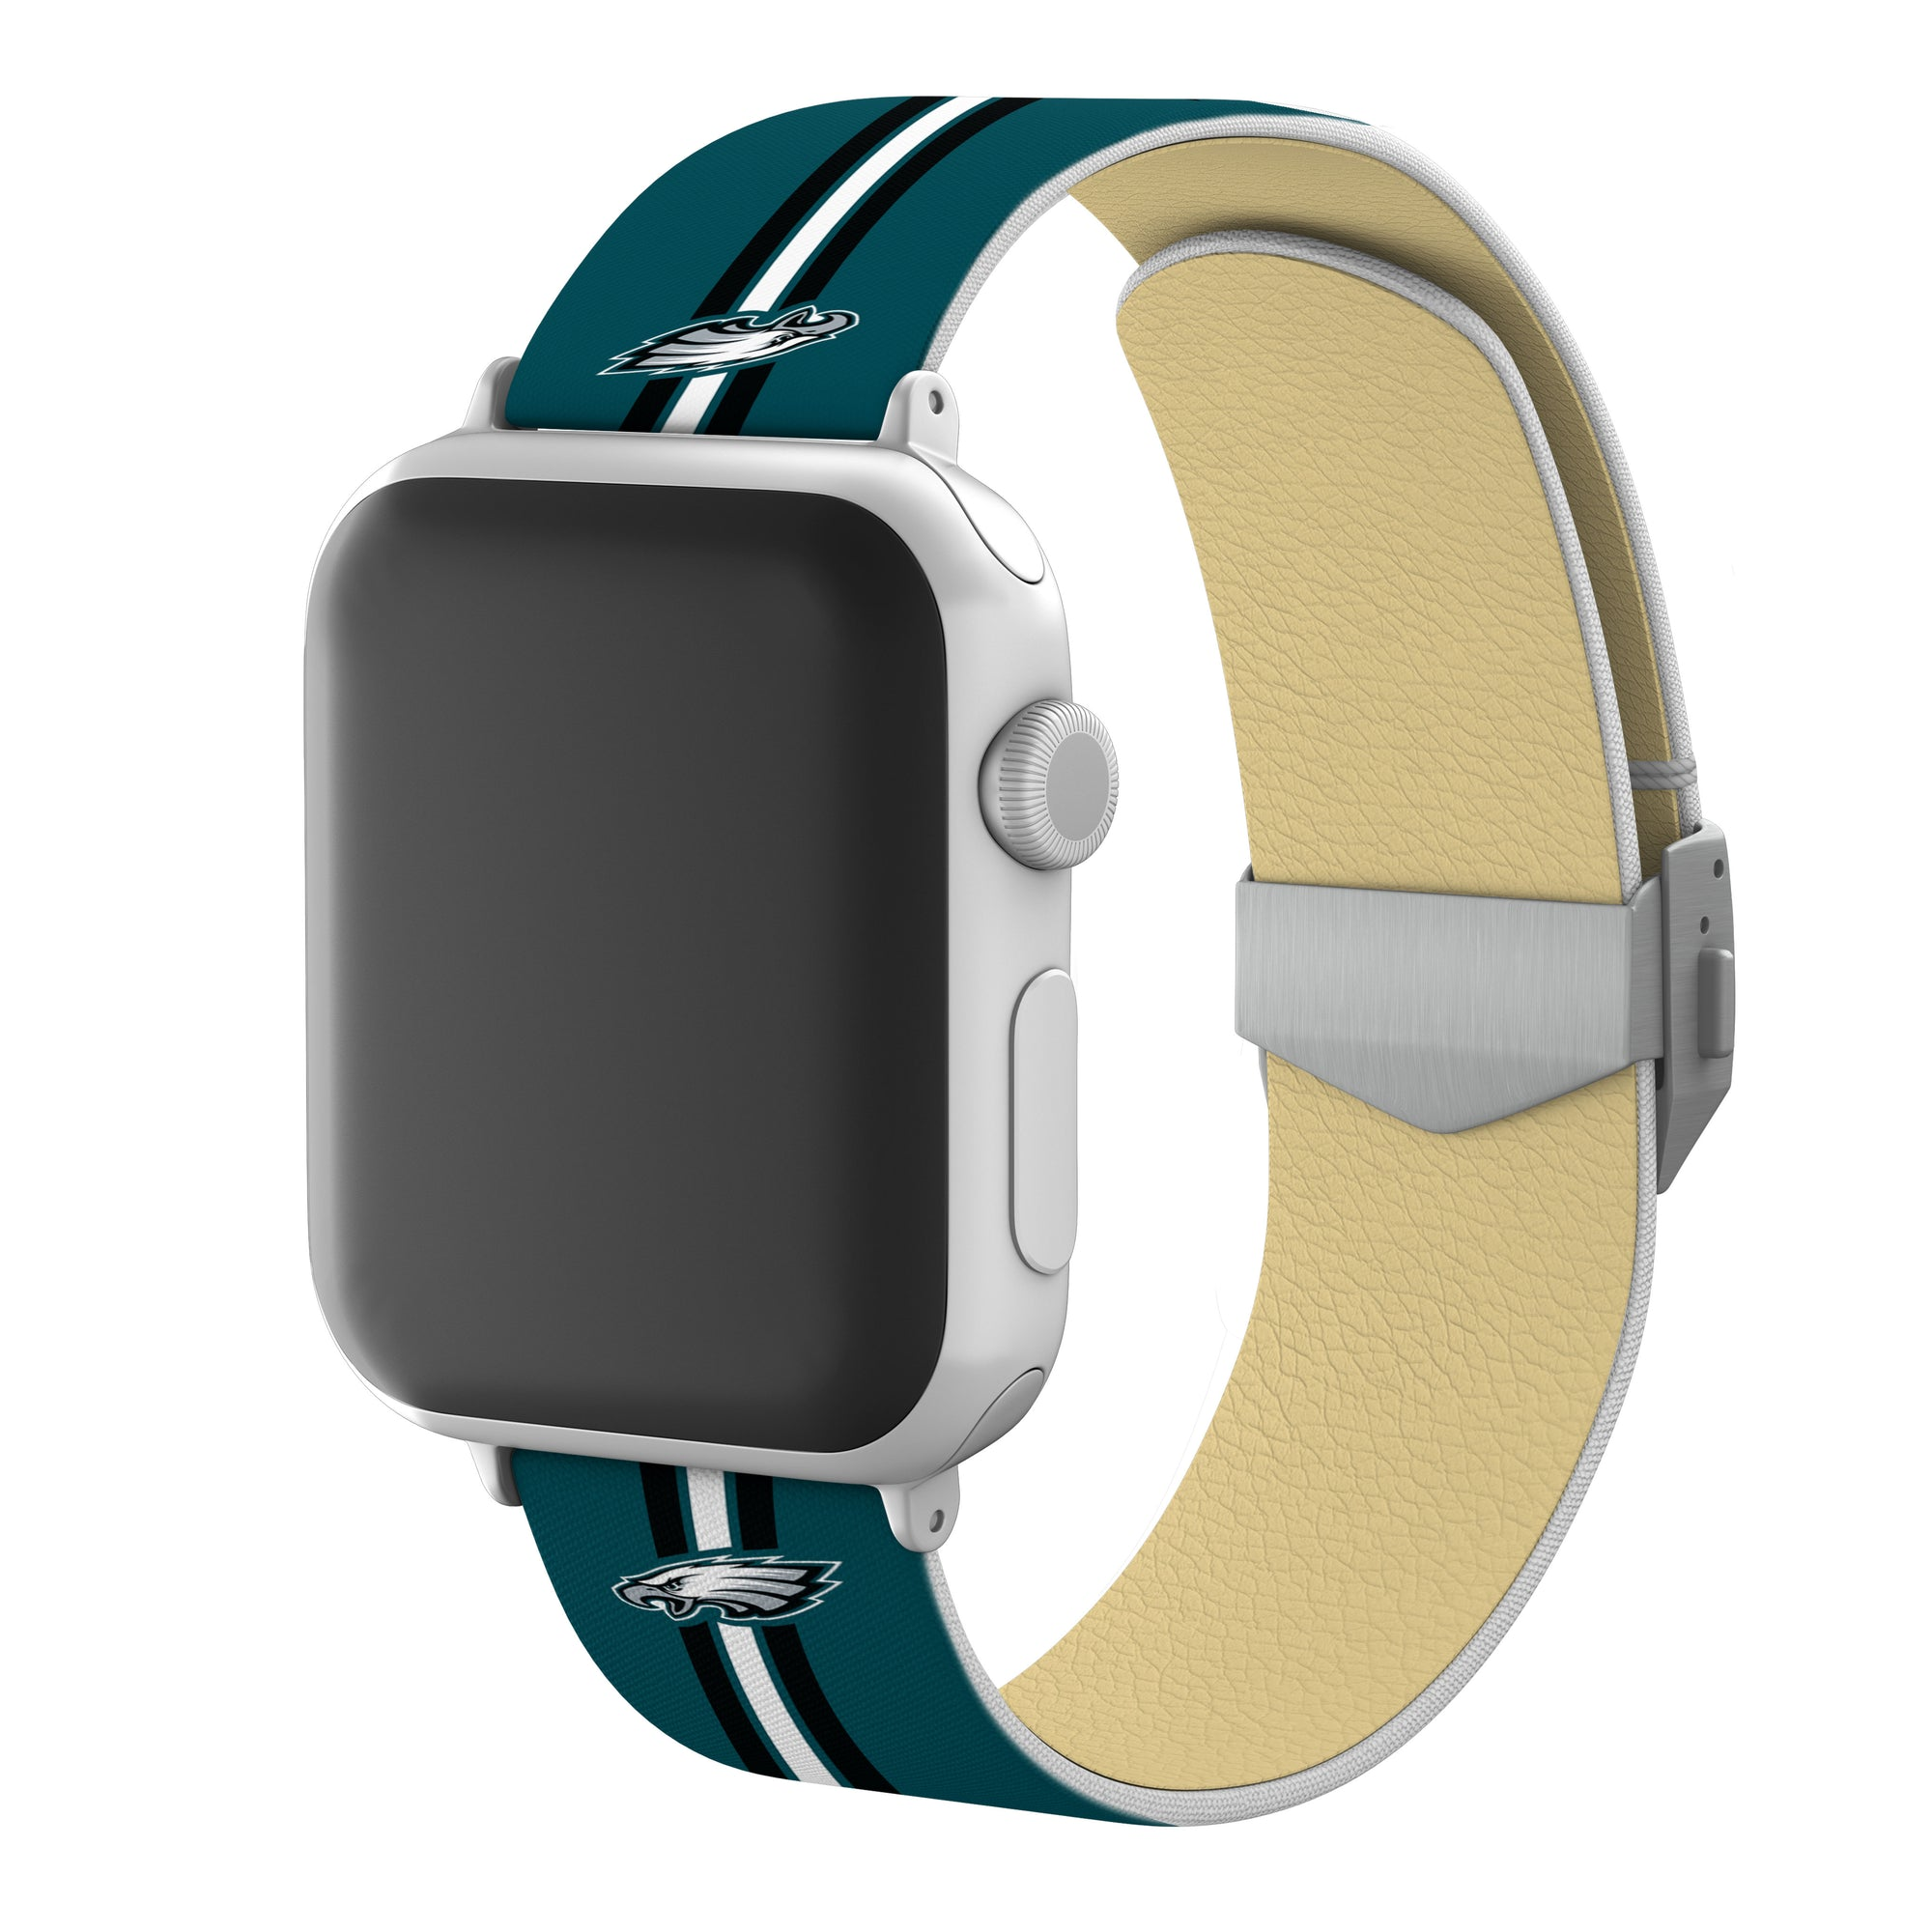 Philadelphia Eagles Full Print Watch Band With Engraved Buckle - AffinityBands